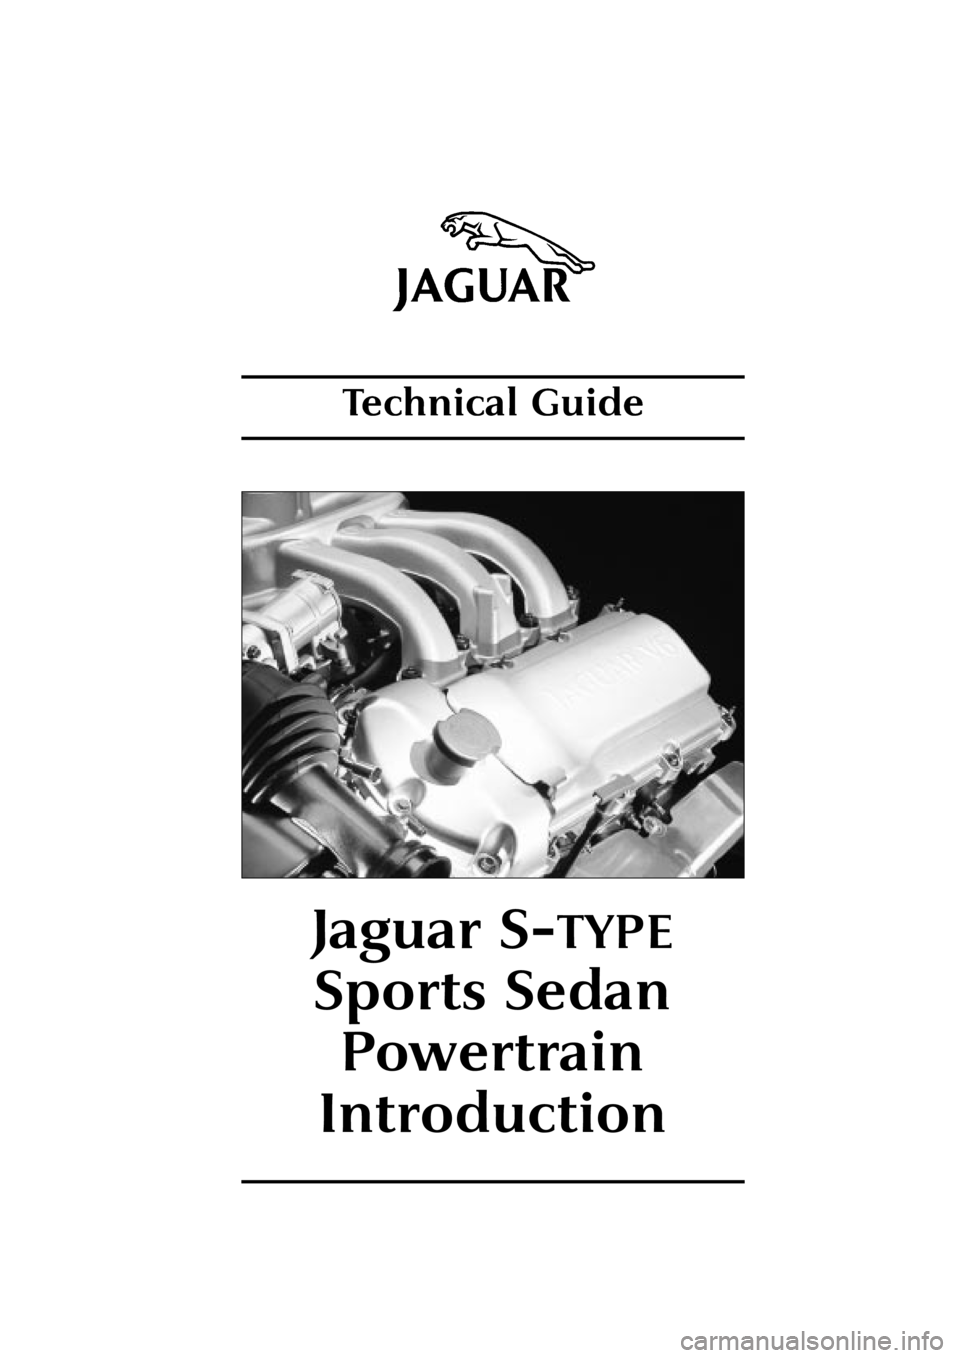 JAGUAR S TYPE 1999 1.G Powertrain Manual, Page 1